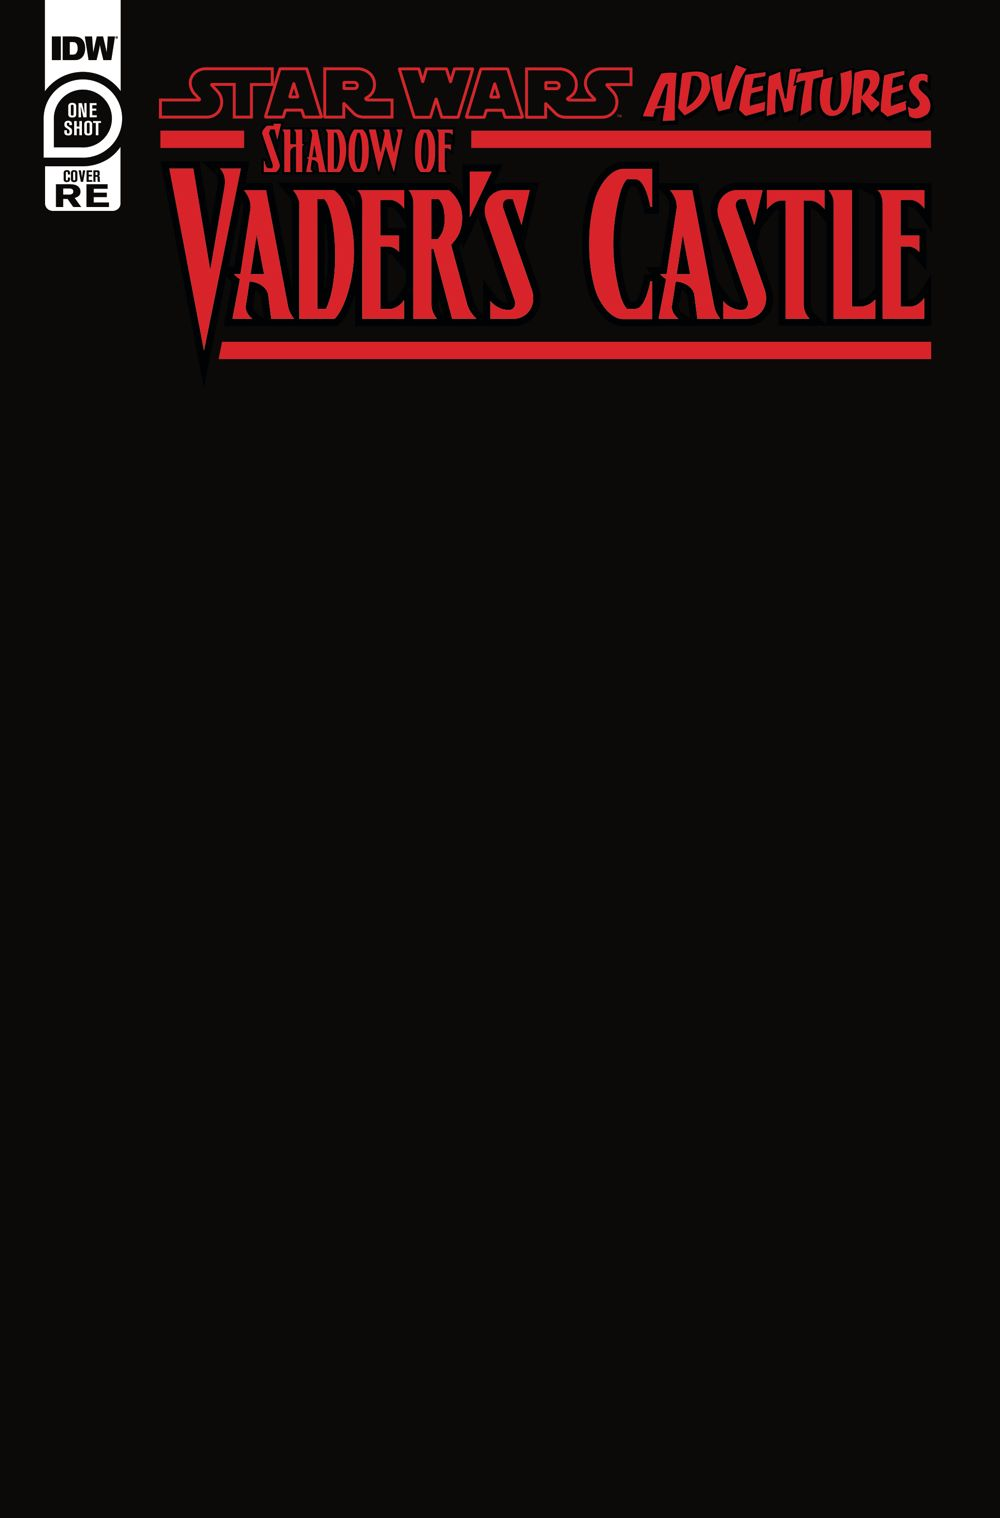 SWShadowofVader-Cover-Blank ComicList Previews: STAR WARS ADVENTURES SHADOW OF VADER'S CASTLE #1